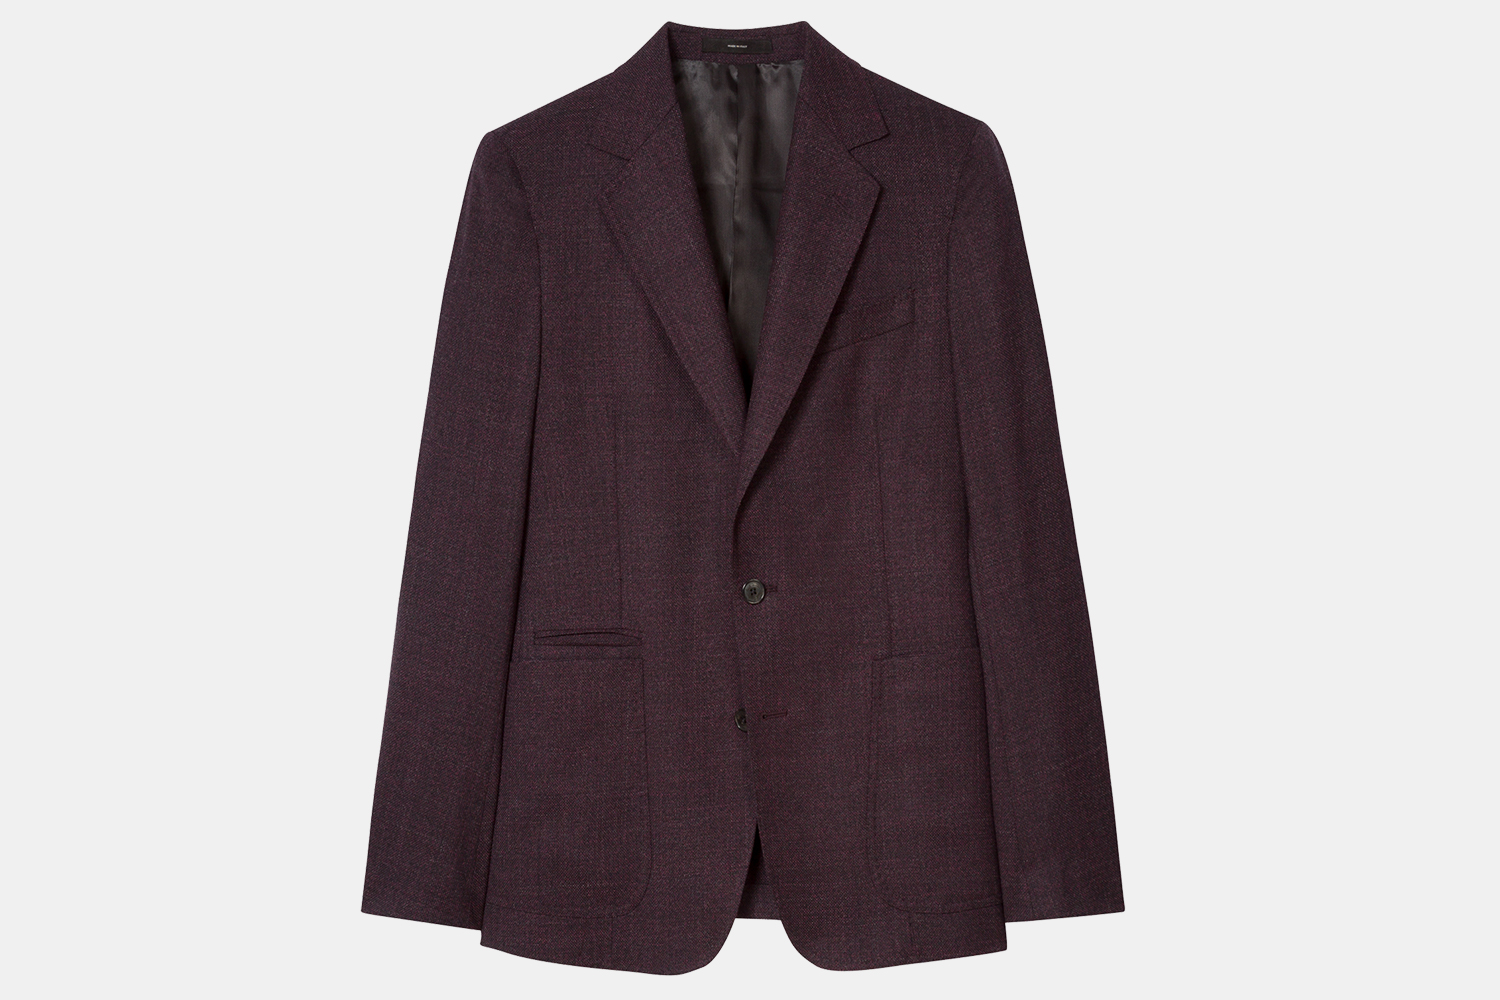 Paul Smith Men's Burgundy Textured Wool Buggy-Lined Blazer Discount